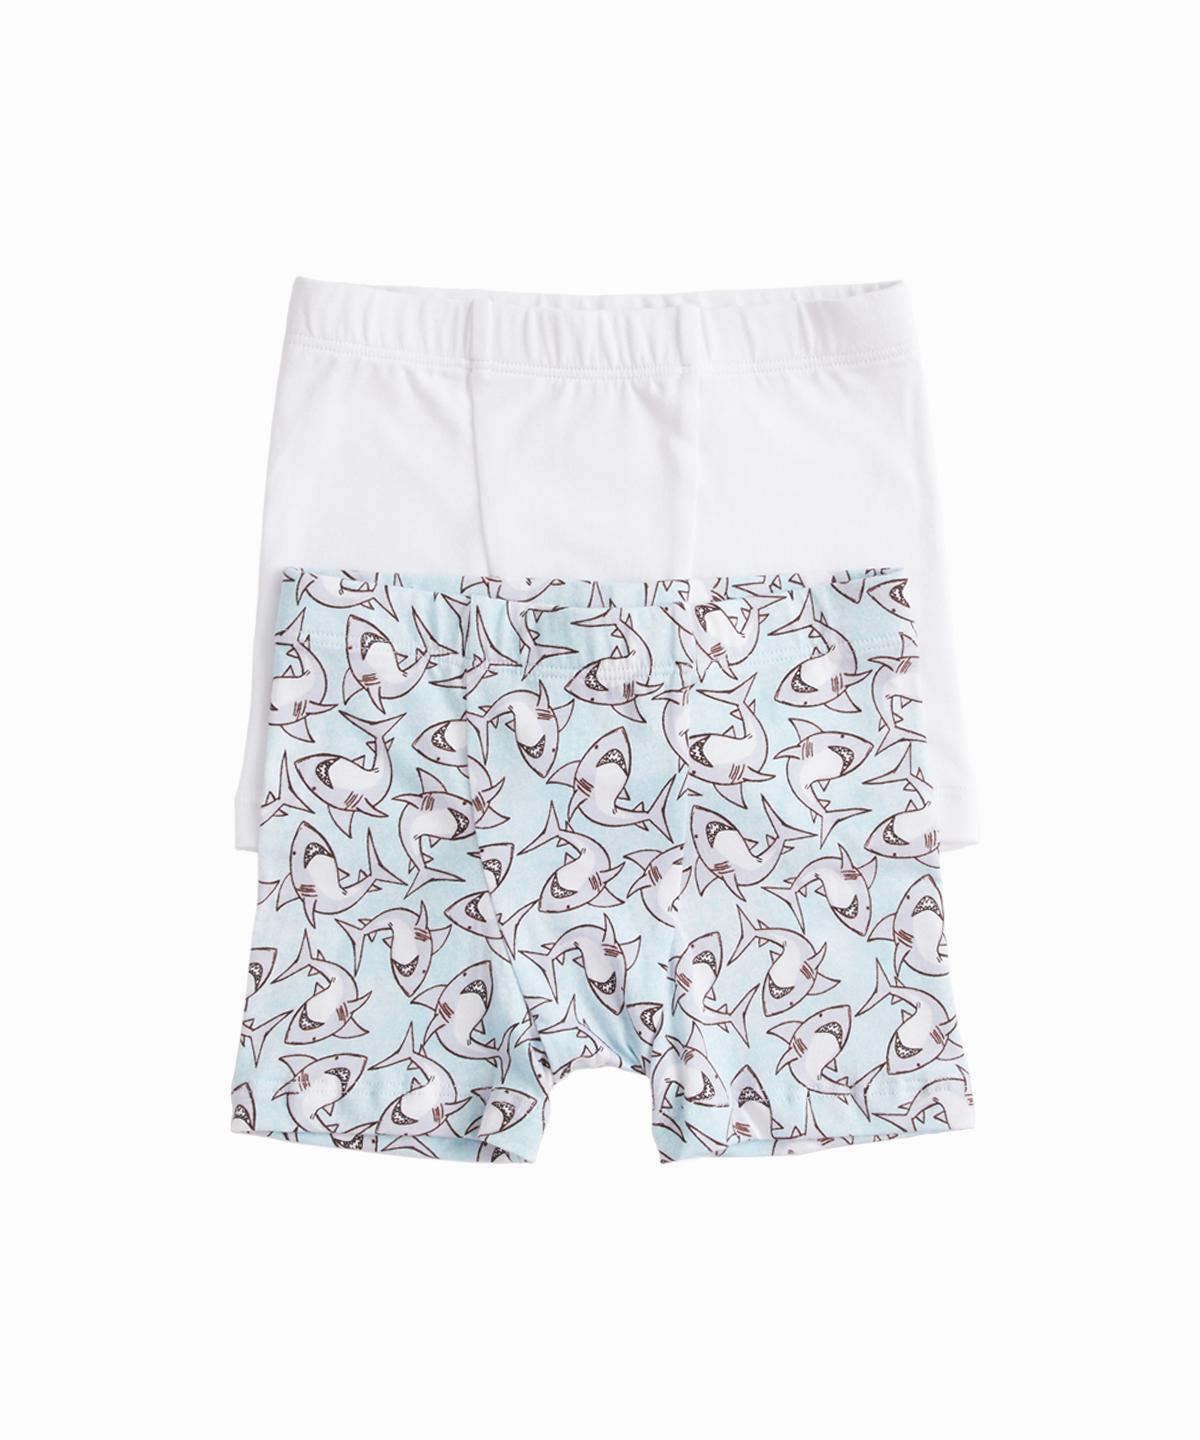 Set of 2 Shark Print/White Boxers